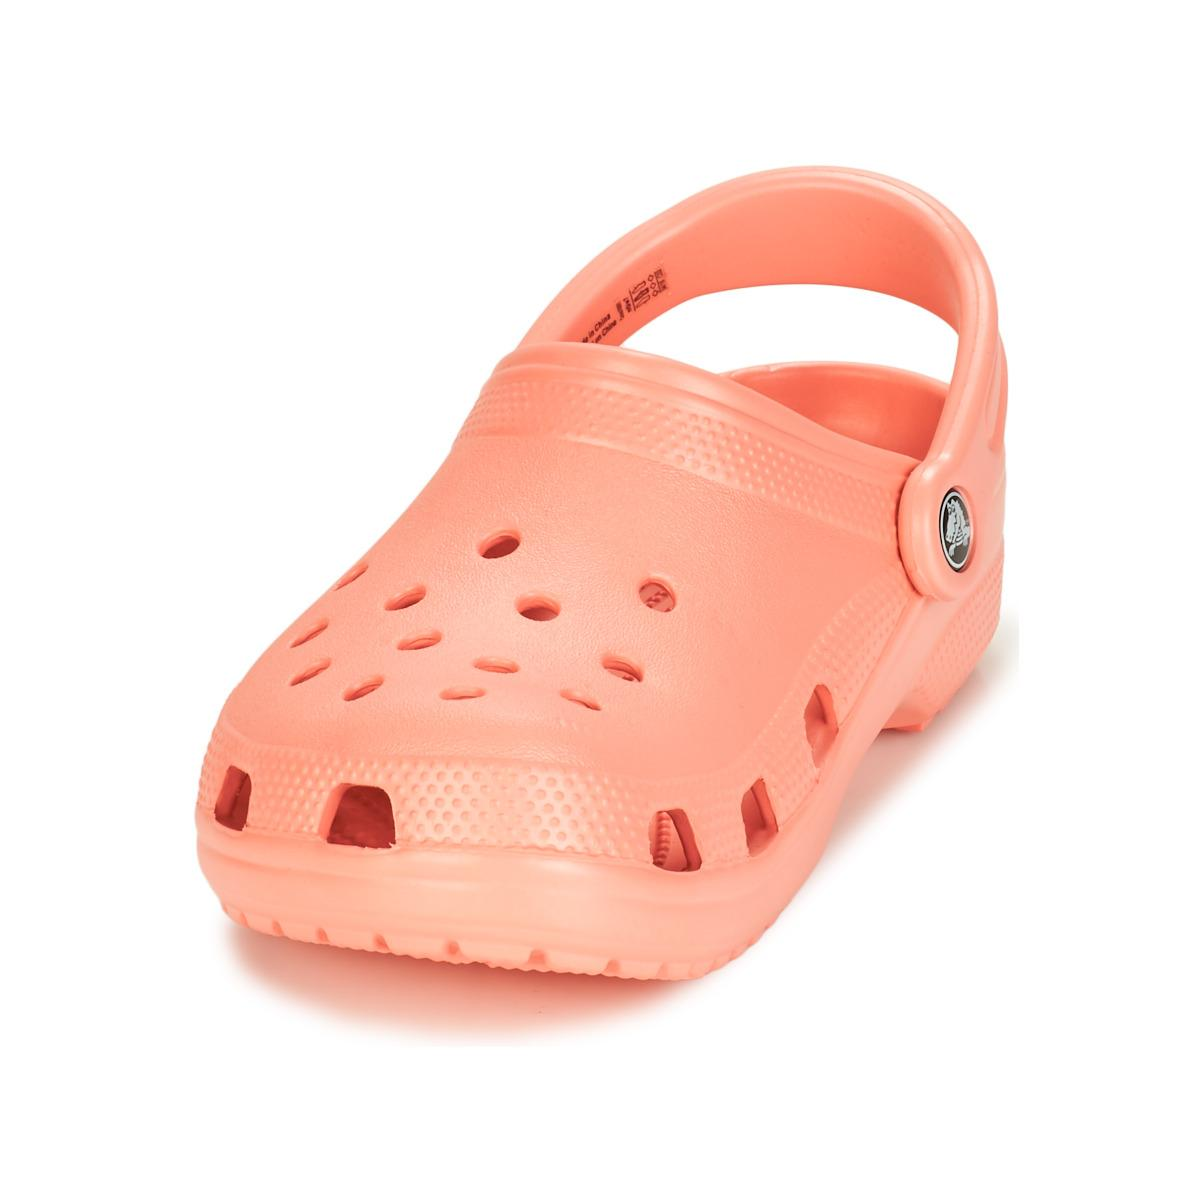 335eb2e72 Crocs™ Classic Clogs (shoes) in Pink - Lyst